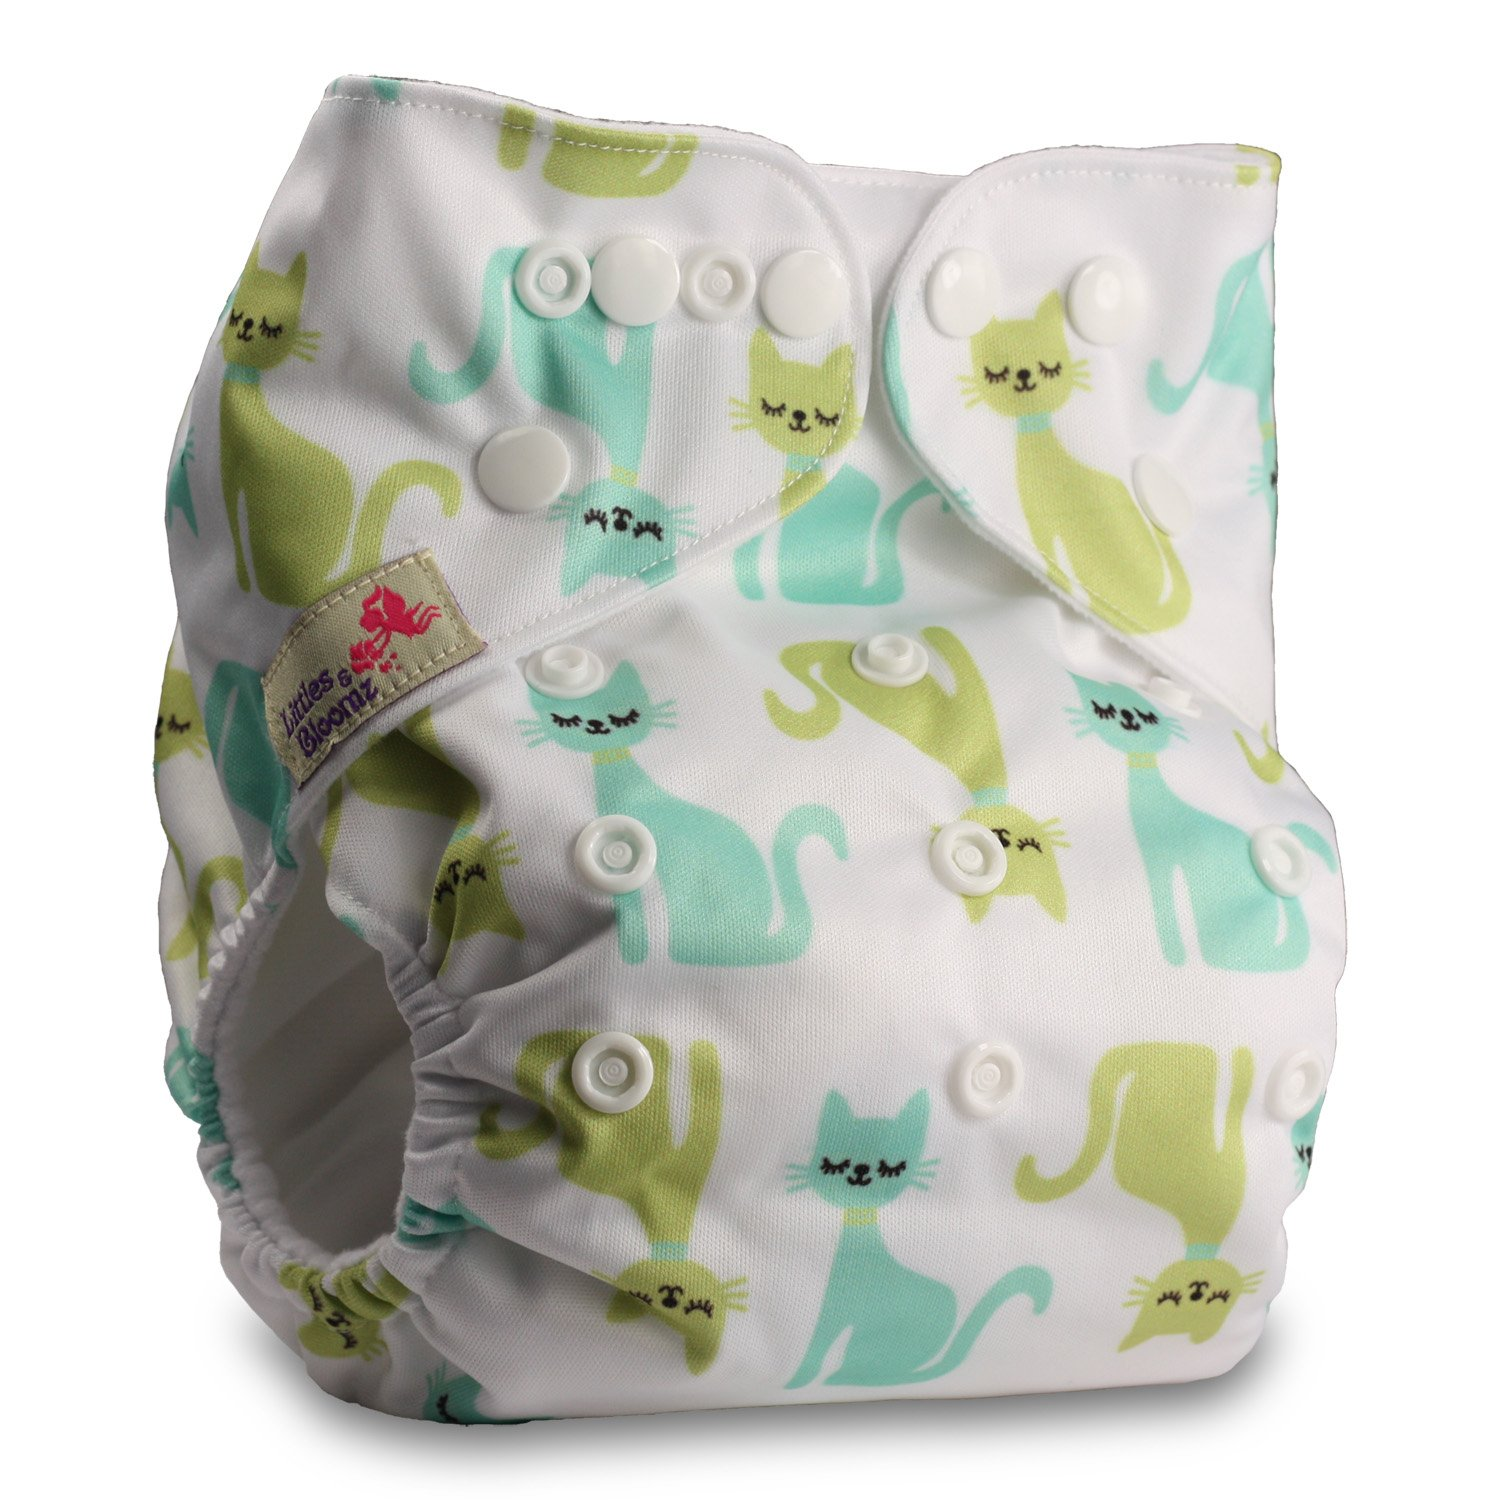 Reusable Pocket Cloth Nappy with 1 Microfibre Insert Pattern 42 Littles /& Bloomz Fastener: Popper Set of 1